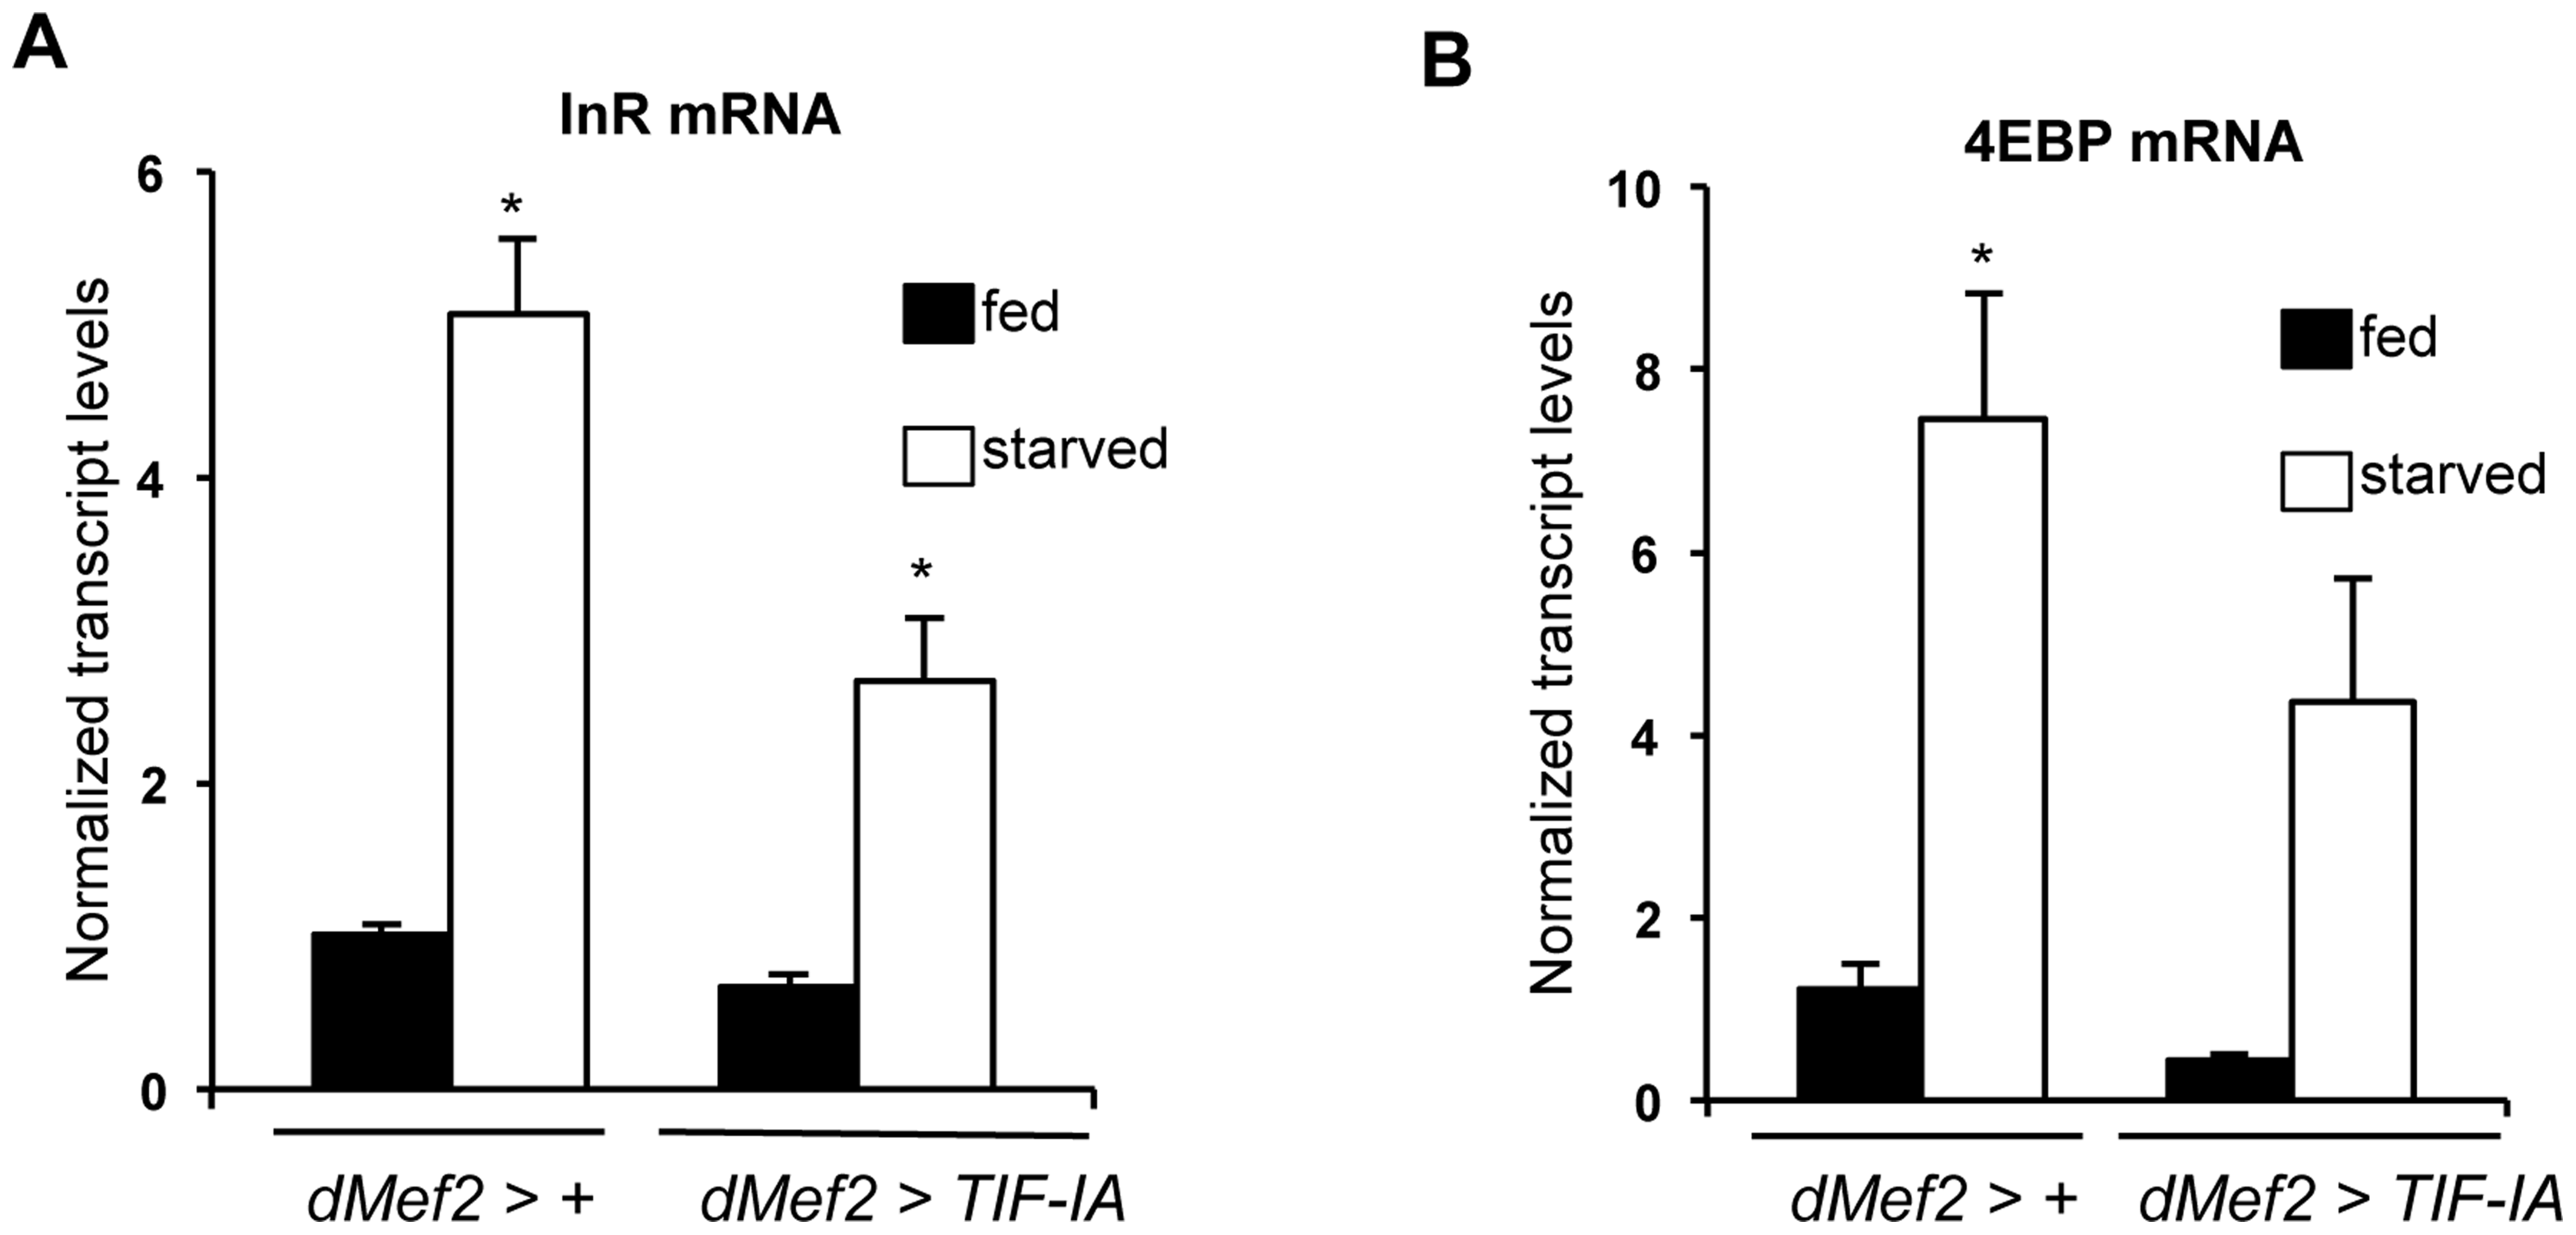 TIF-IA overexpression in muscle can partially reverse the effects of starvation on FOXO-dependent genes.